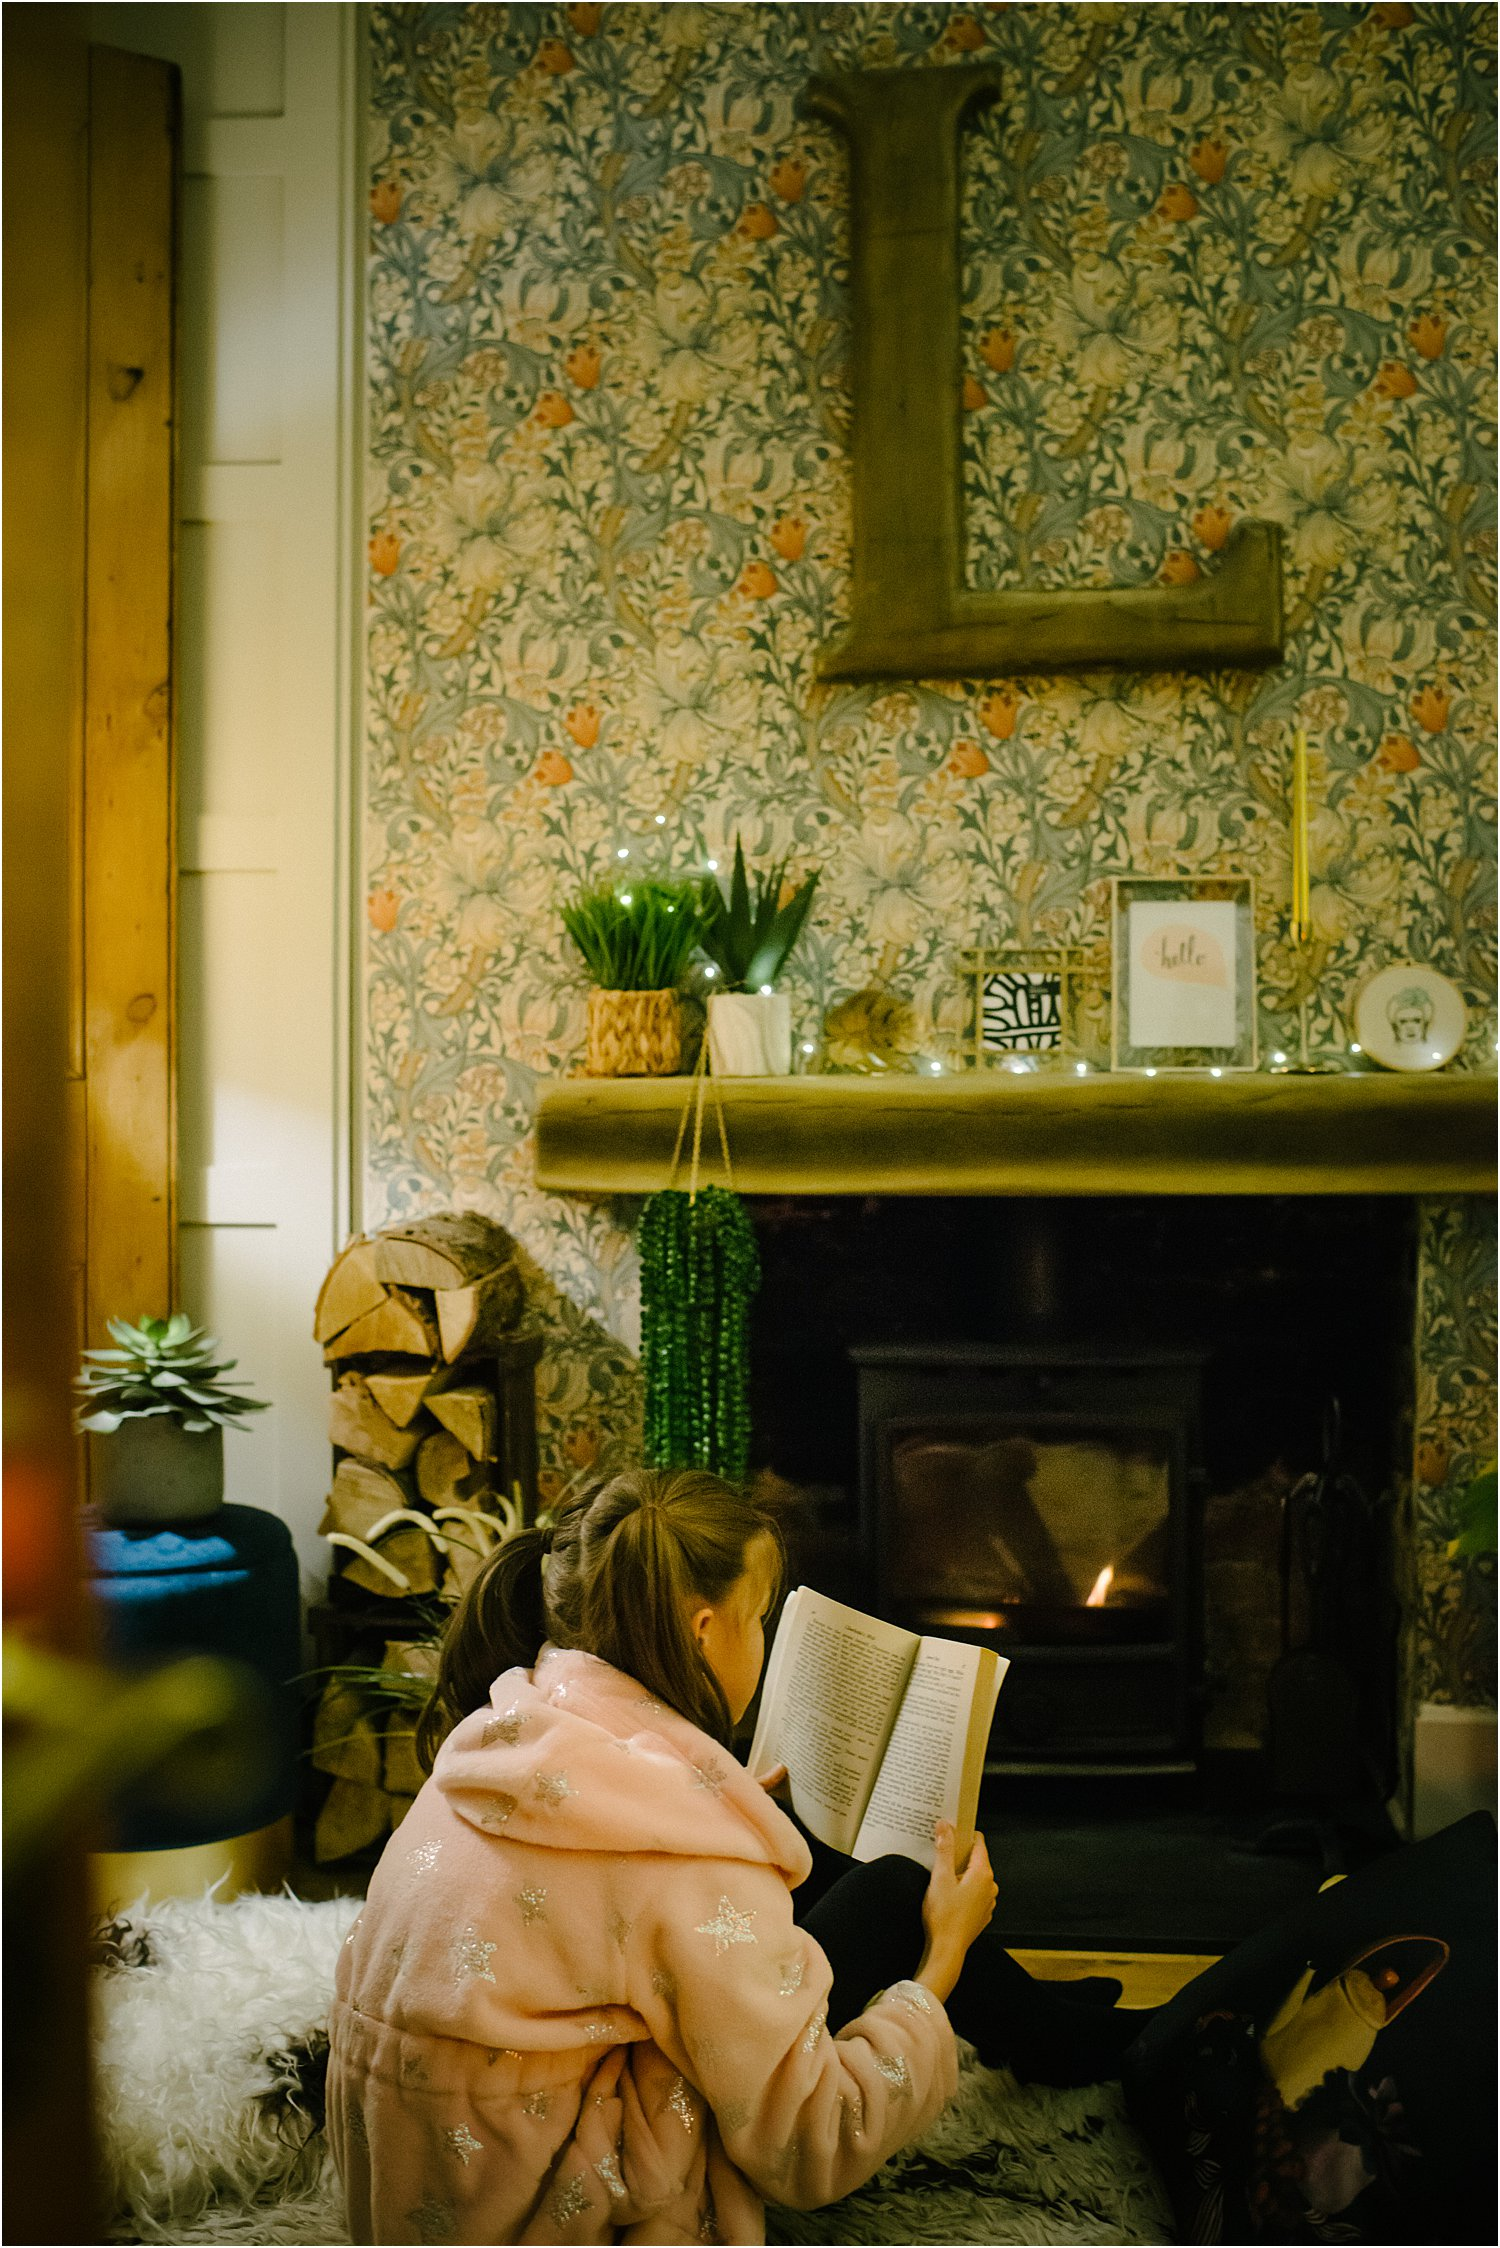 how-a-stove-burner-changed-lifestyle-cosy-maximalist-eclectic-interiors-lily-sawyer-photo